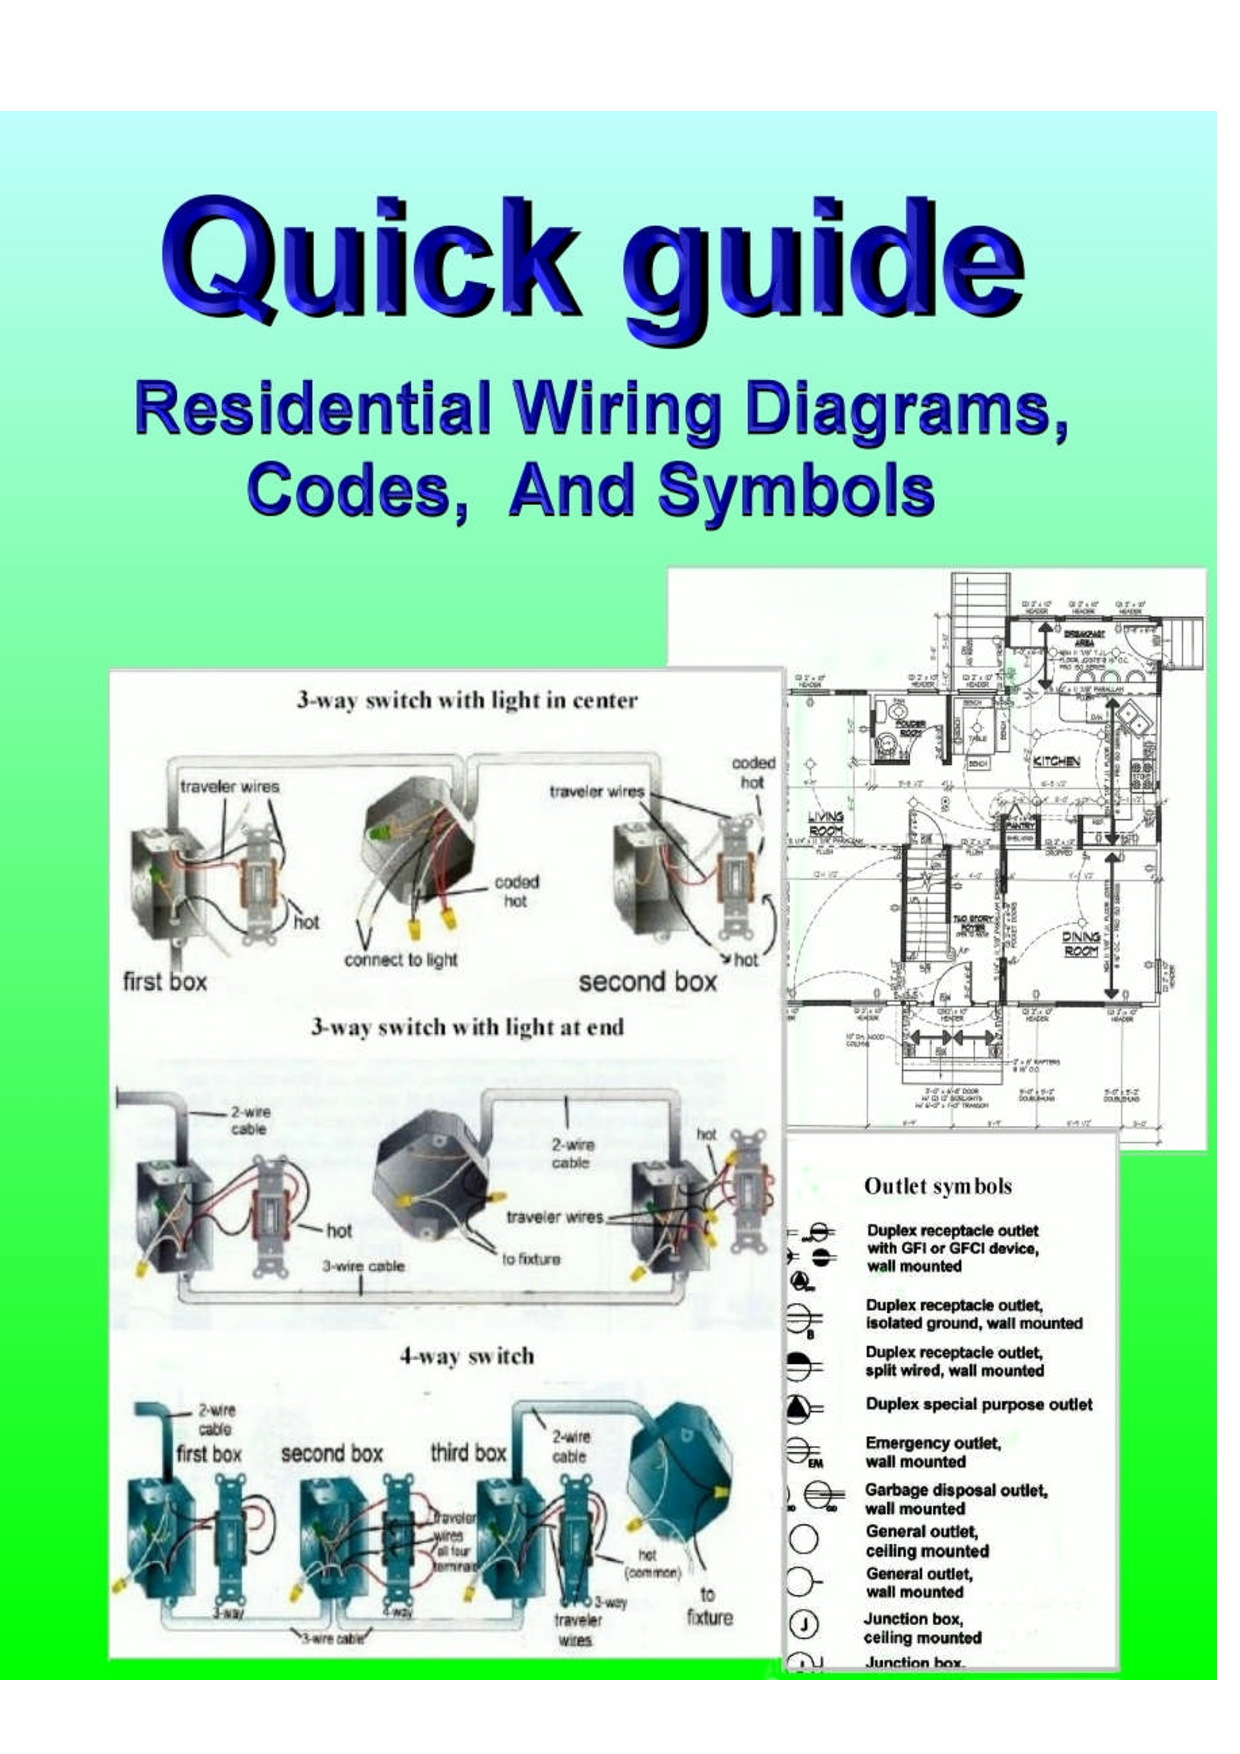 Home electrical wiring diagramspdf download legal documents 39 home electrical wiring diagramspdf download legal documents 39 pages with many diagrams and illustrations a step by step home wiring guide with diagrams asfbconference2016